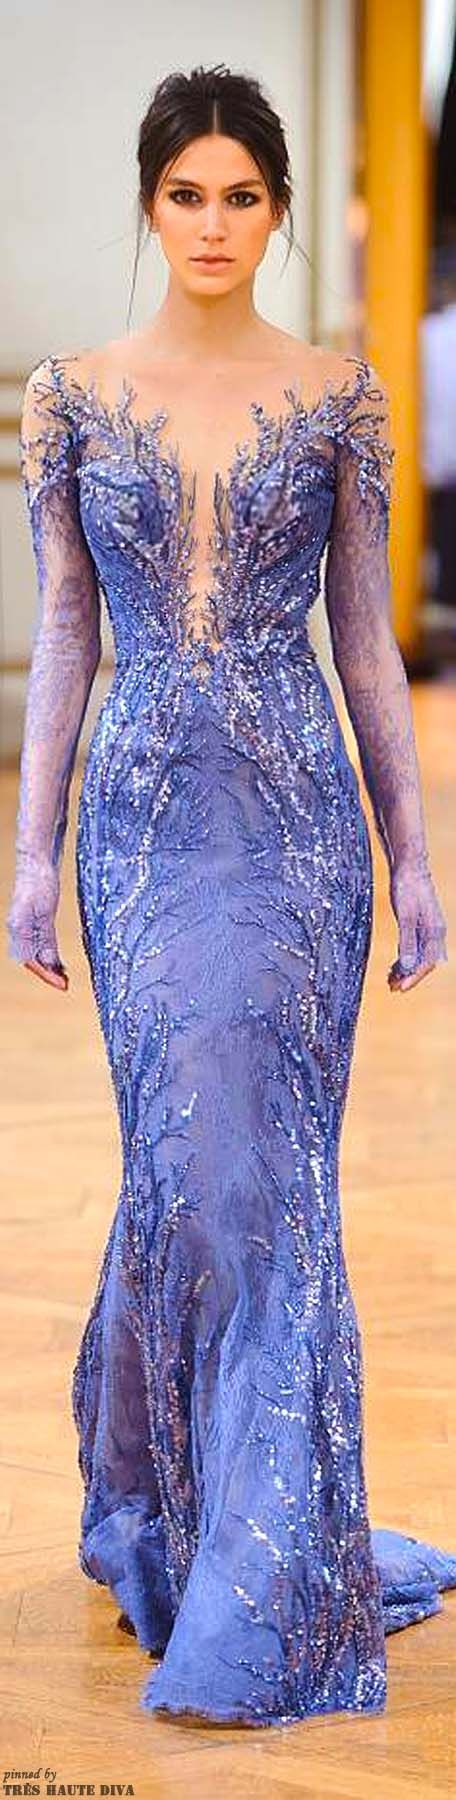 Zuhair Murad Haute Couture Autumn/Winter 2013 - Runway